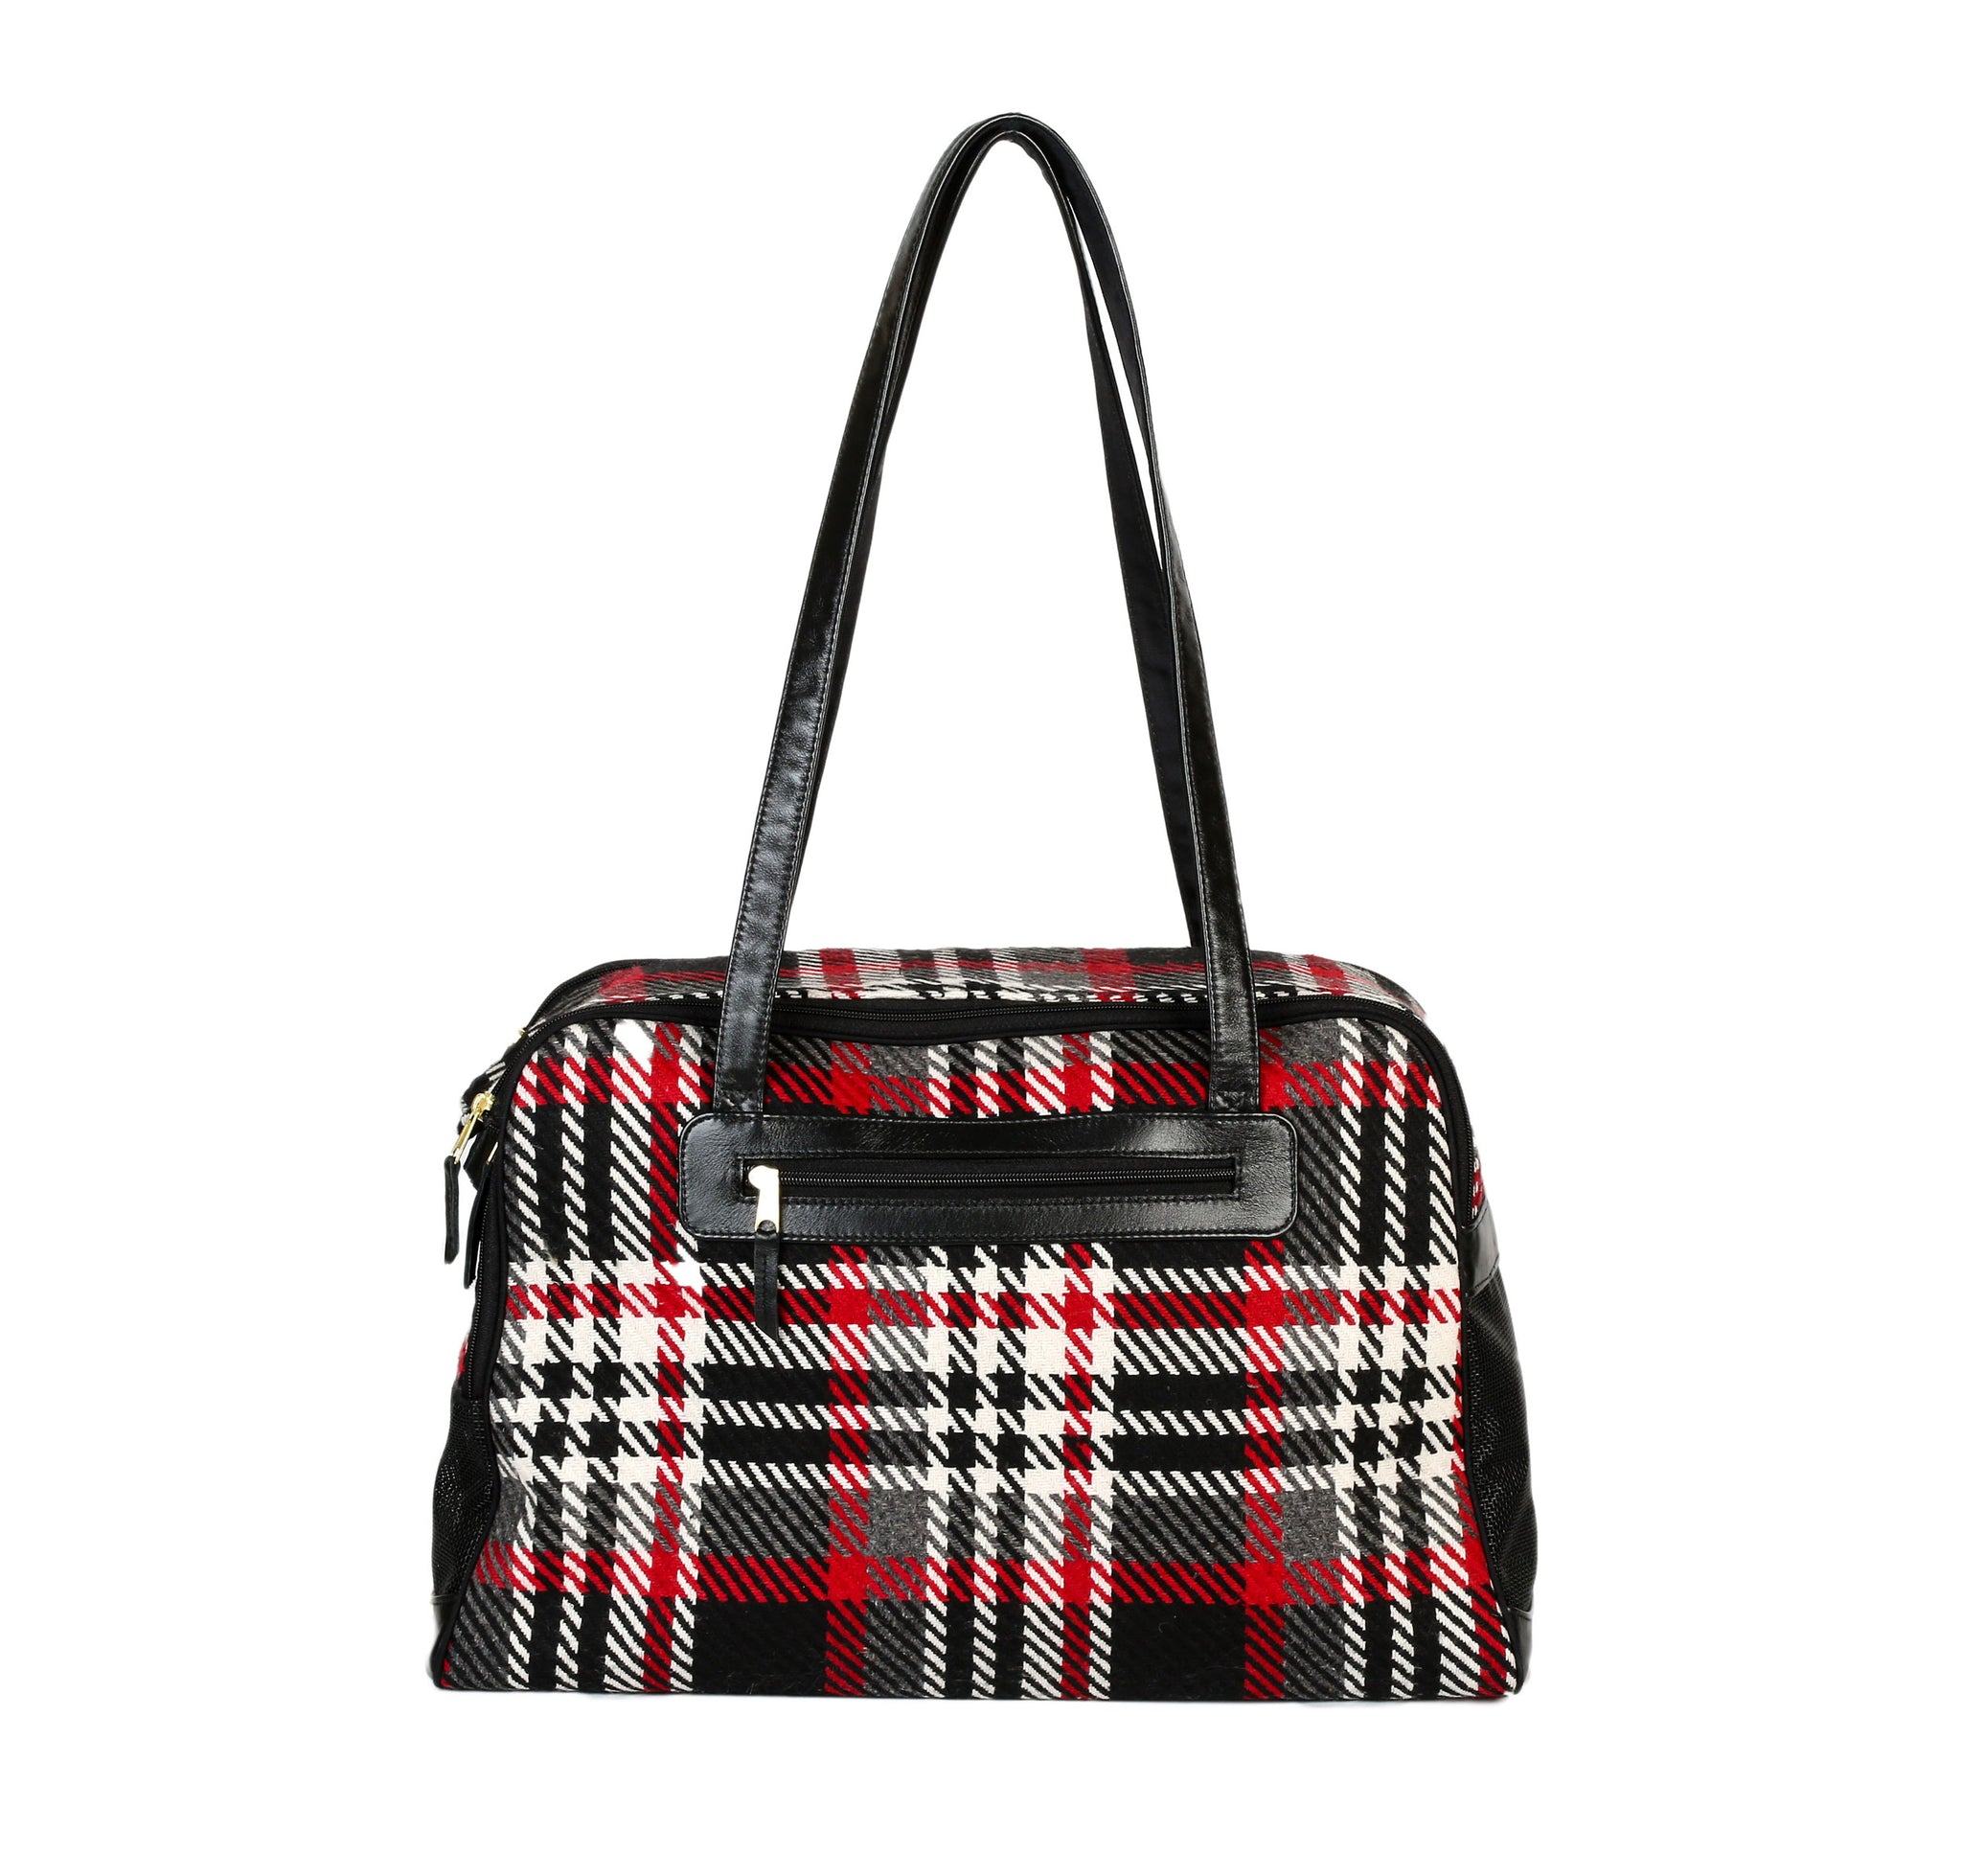 Dog Carrier - Wool Black and Red Plaid